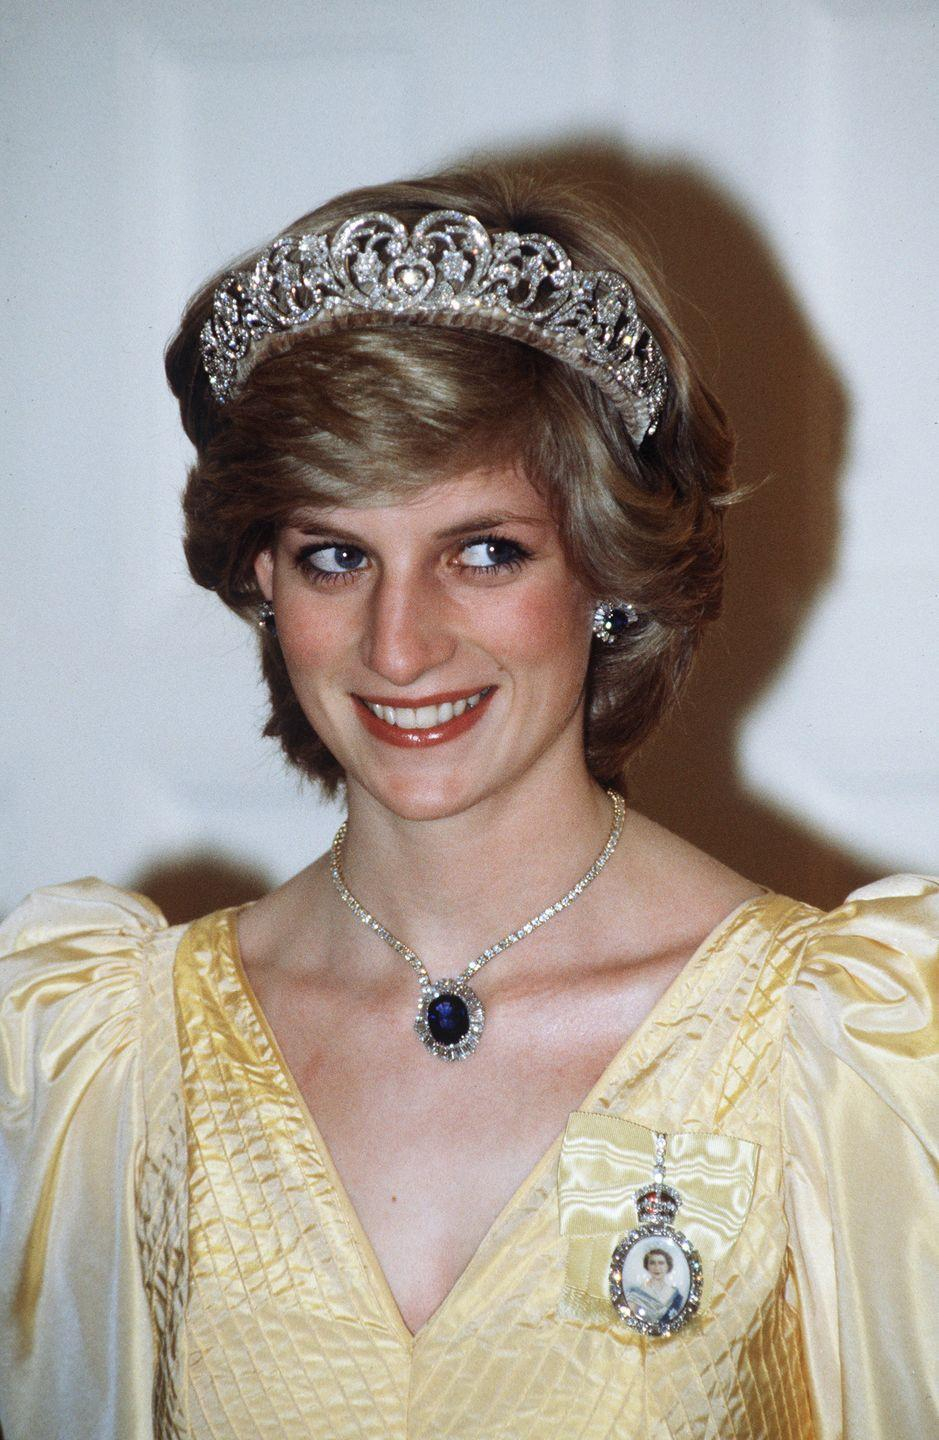 <p>In her royal role, Princess Di often wore beautiful crowns and tiaras (here in 1983) from the royal collection.</p>